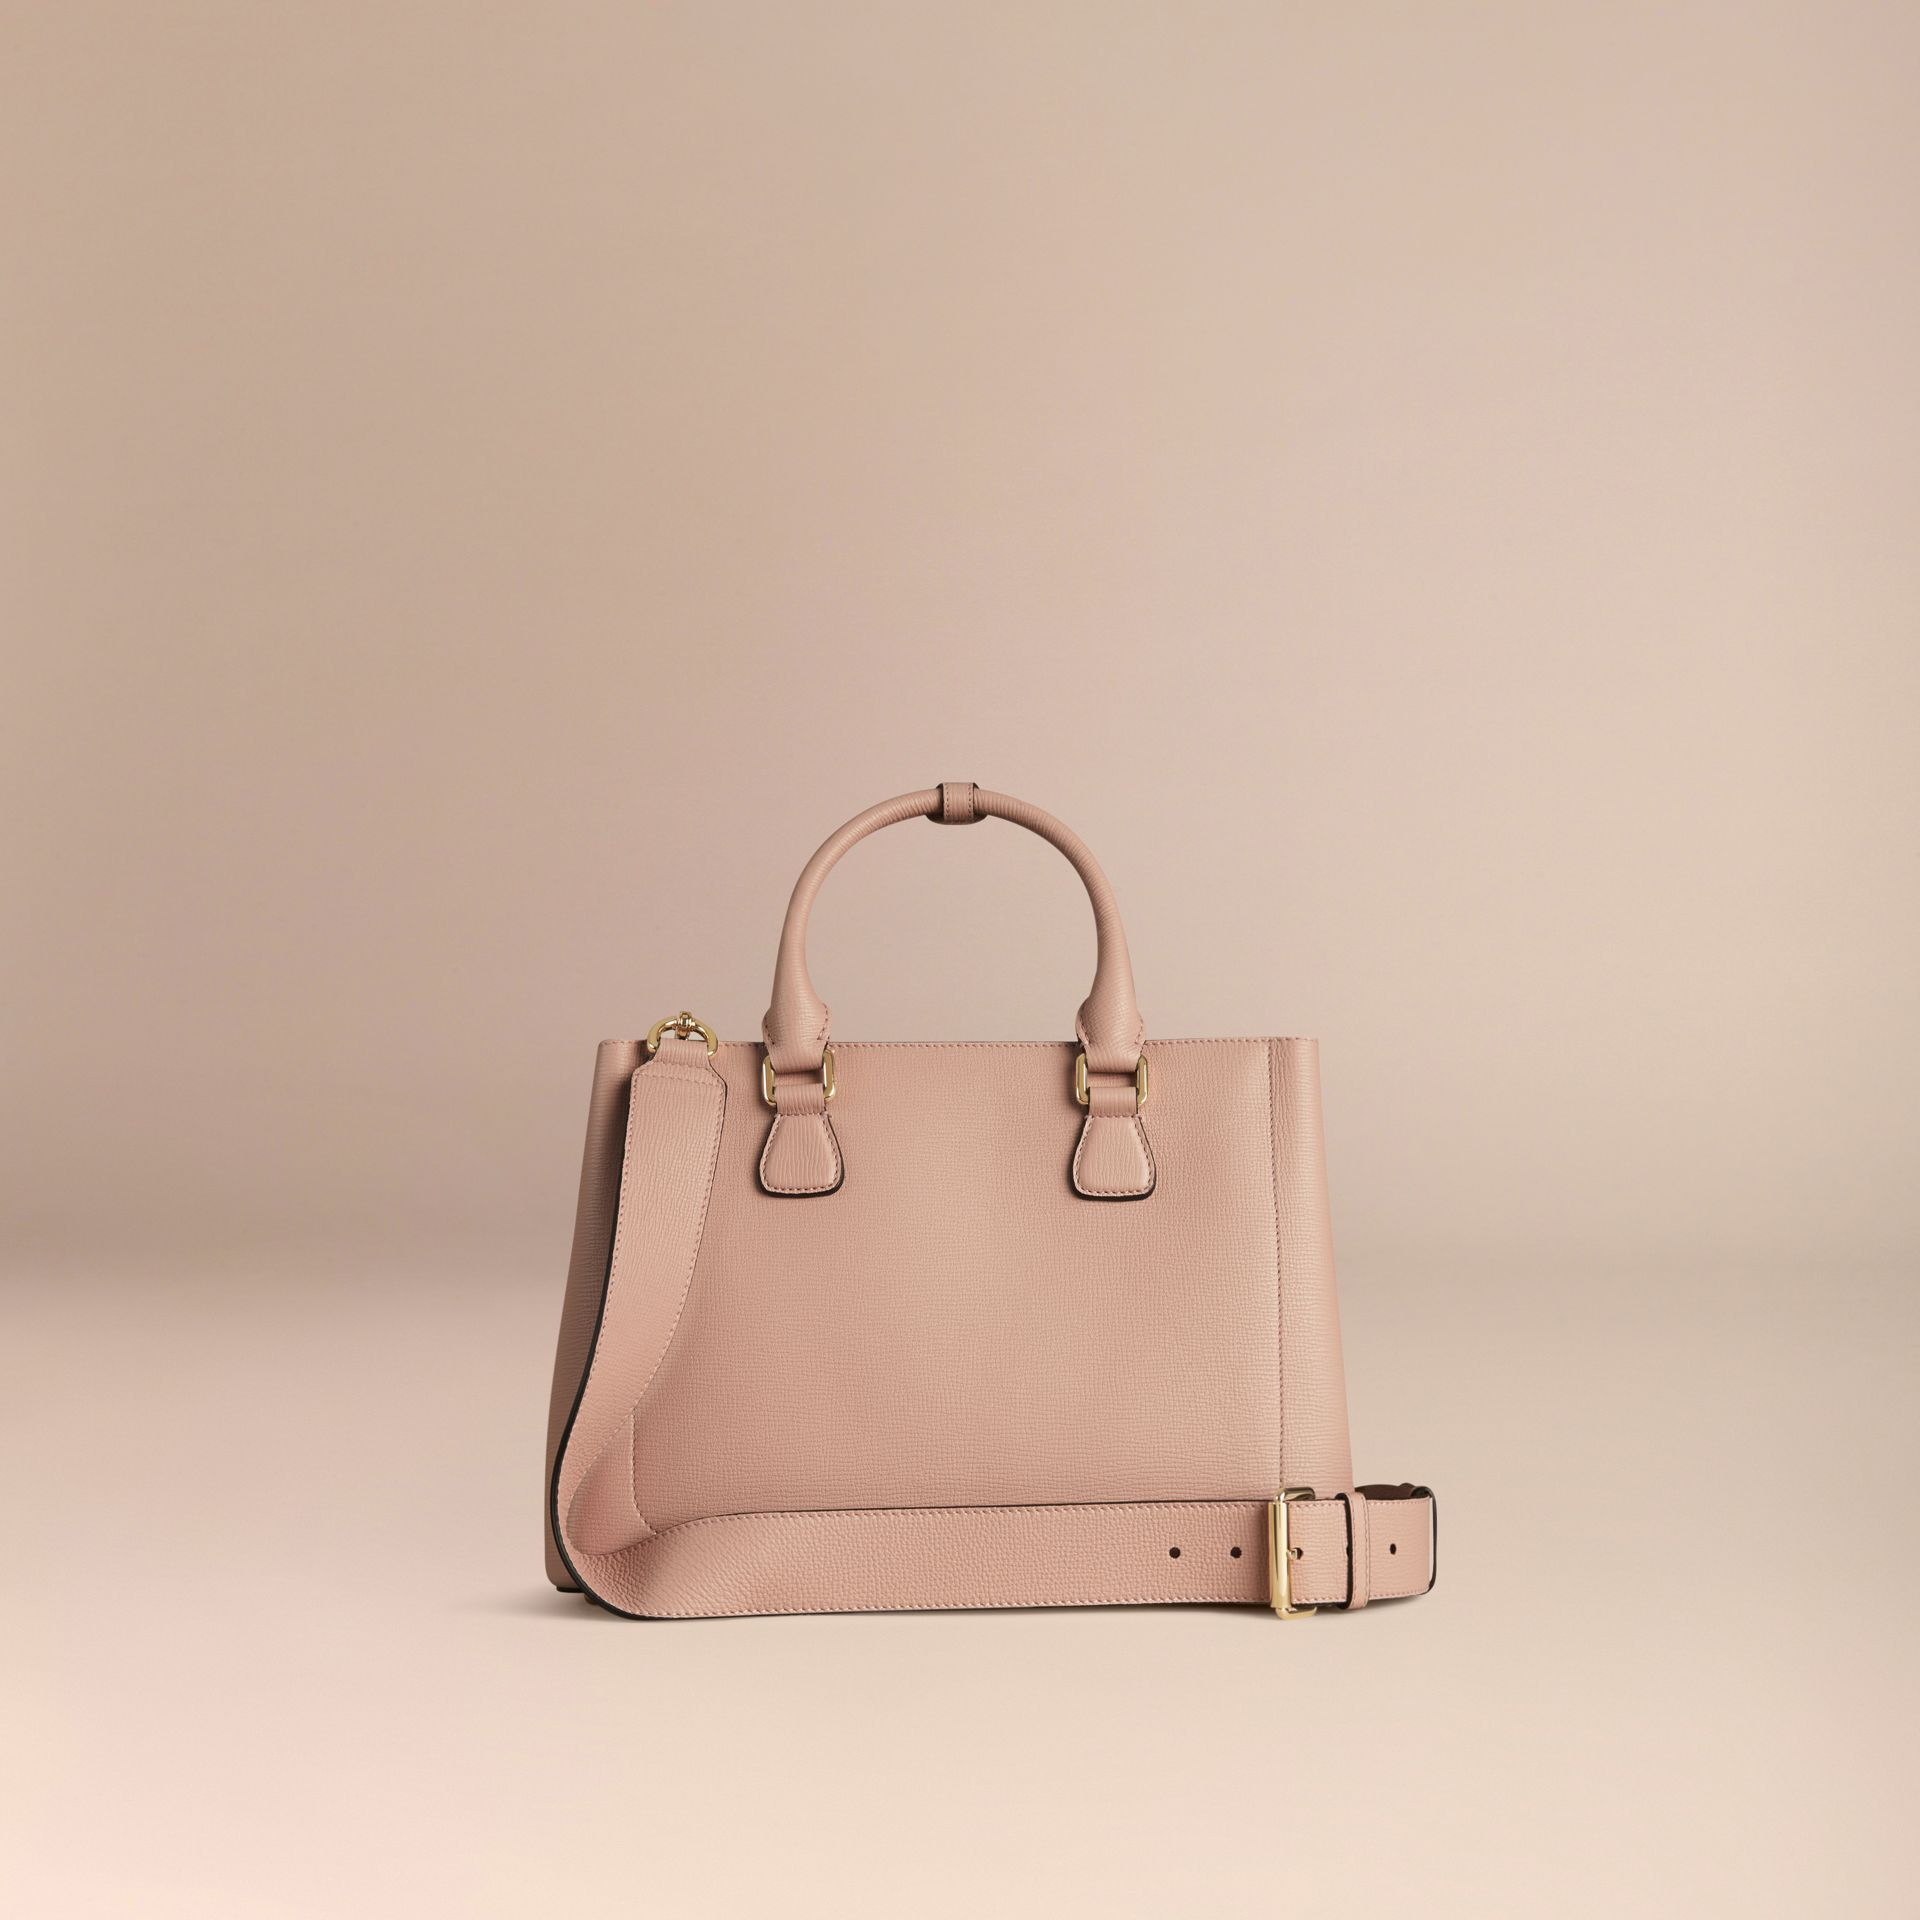 Pale orchid The Medium Saddle Bag in Grainy Bonded Leather Pale Orchid - gallery image 4